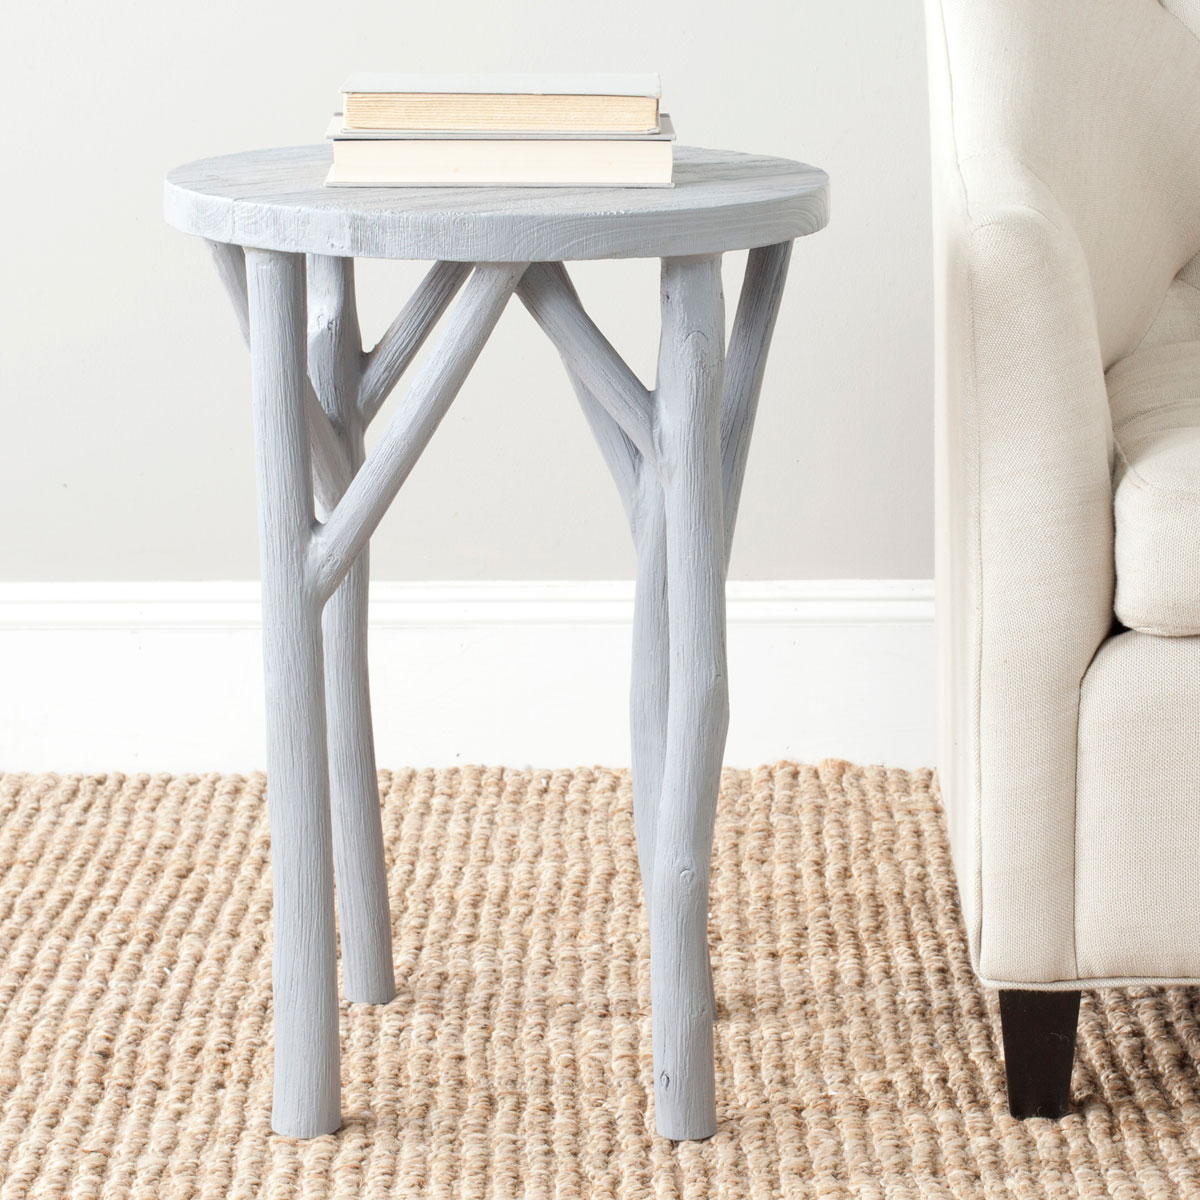 accent tables nightstands furniture safavieh room harper round wood and metal table share this product lucite farnichar wedding tablecloths quilted runners placemats patterns